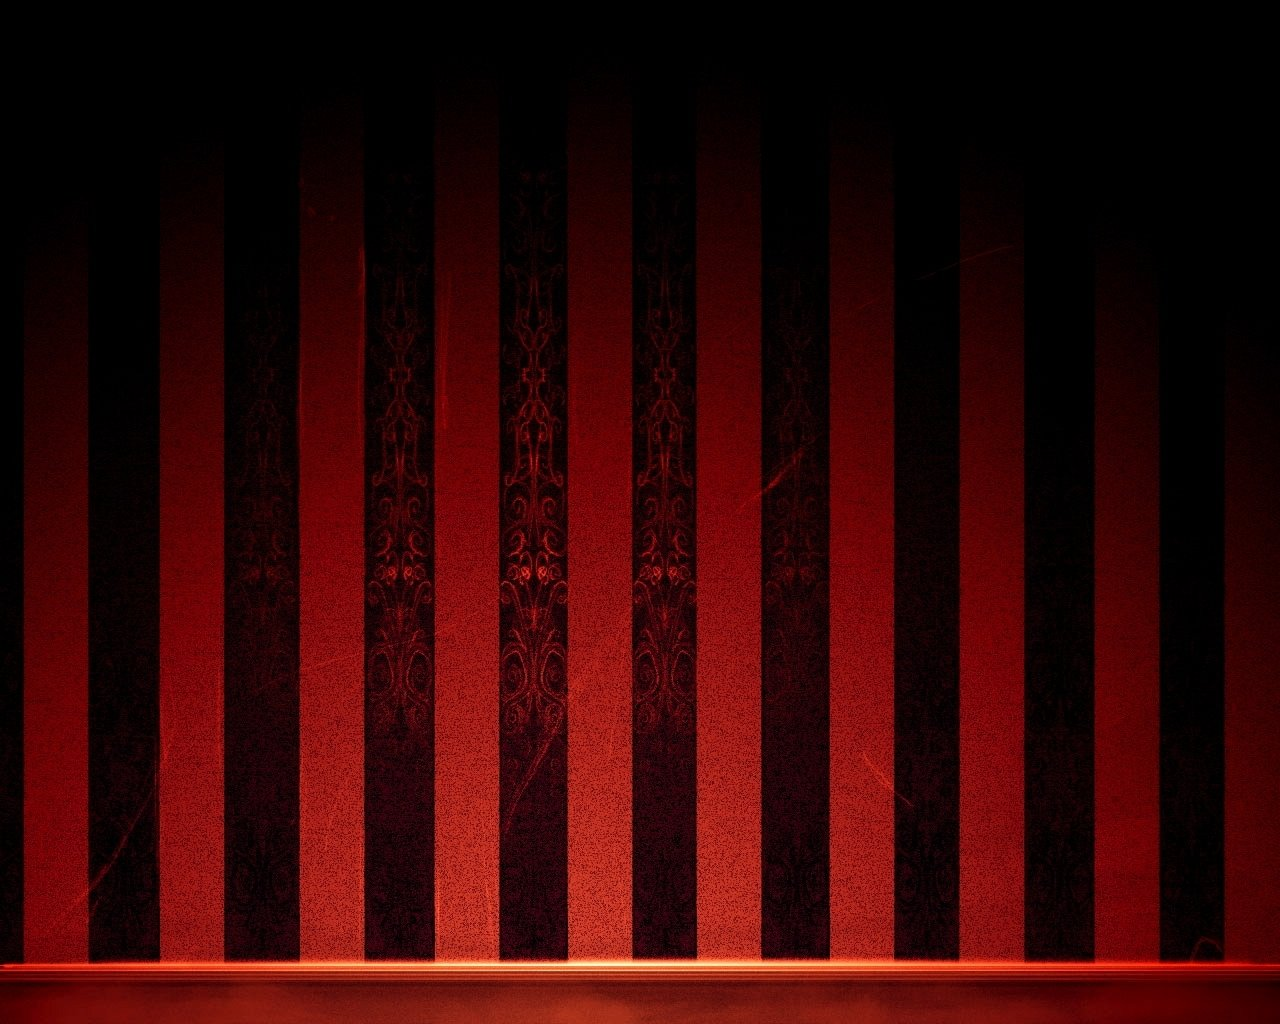 Free Stripe high quality wallpaper ID:137790 for hd 1280x1024 computer